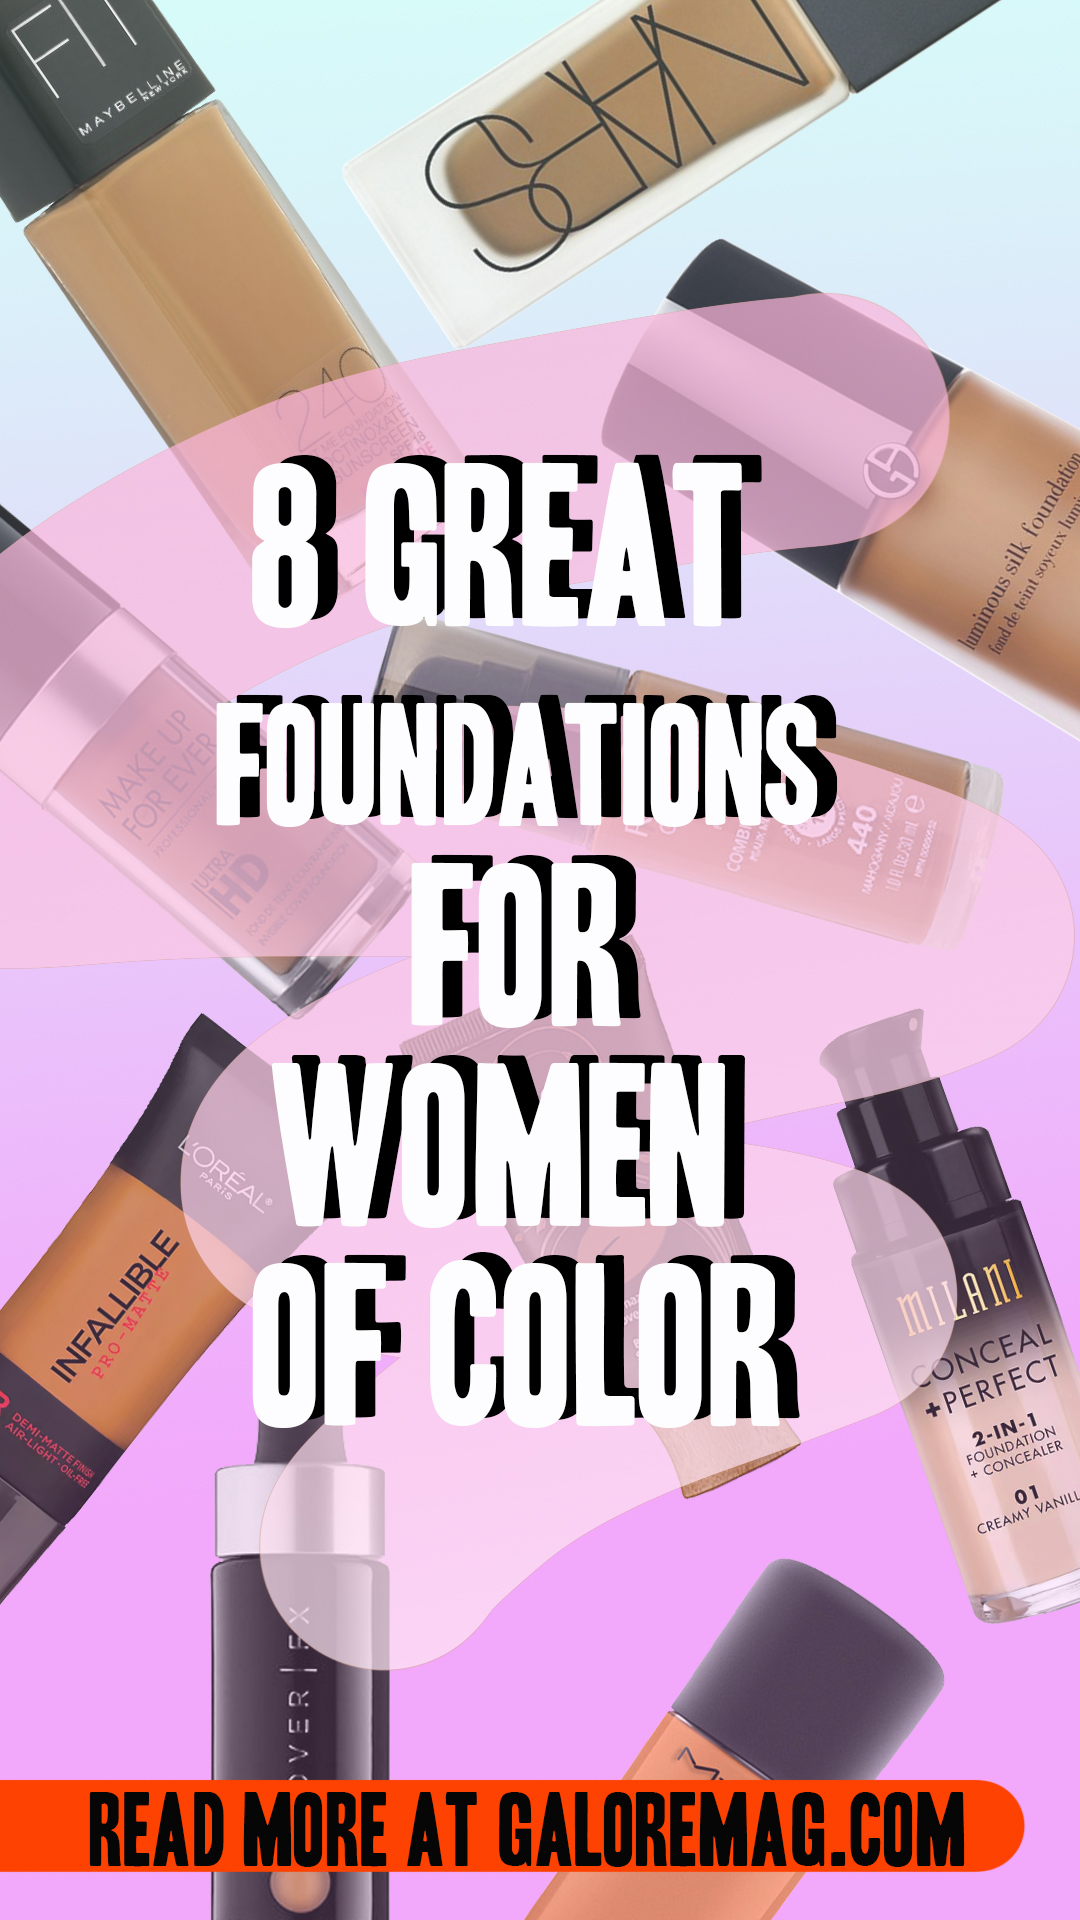 foundation_galore.jpg